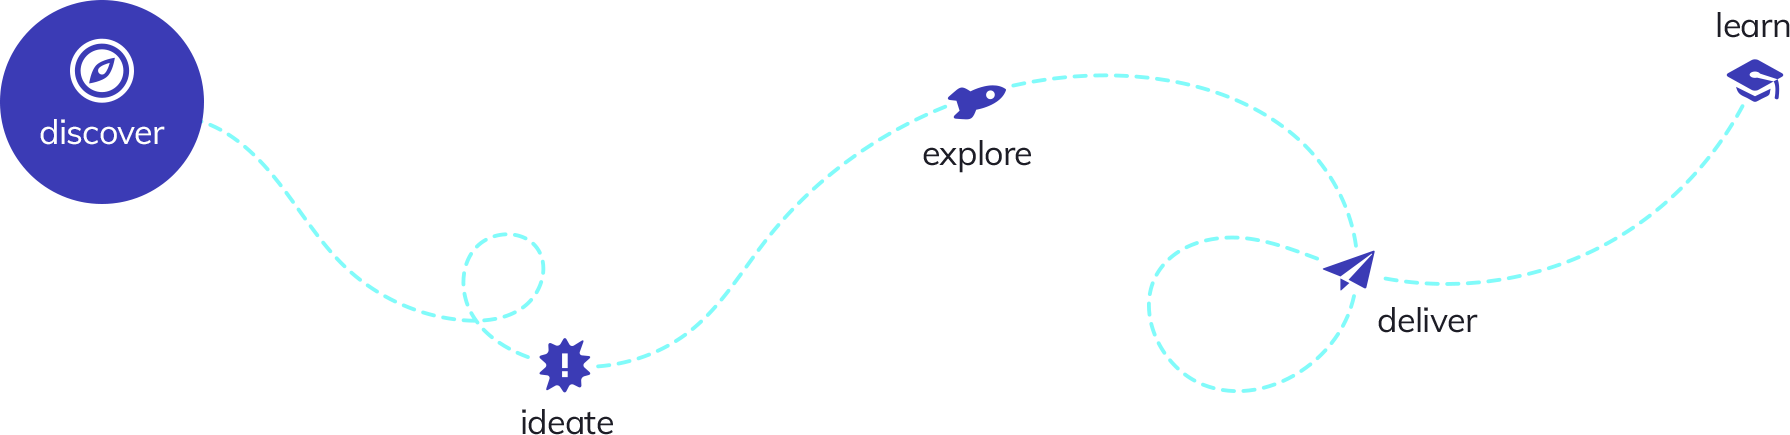 Method diagram: discover, ideate, explore, deliver and learn